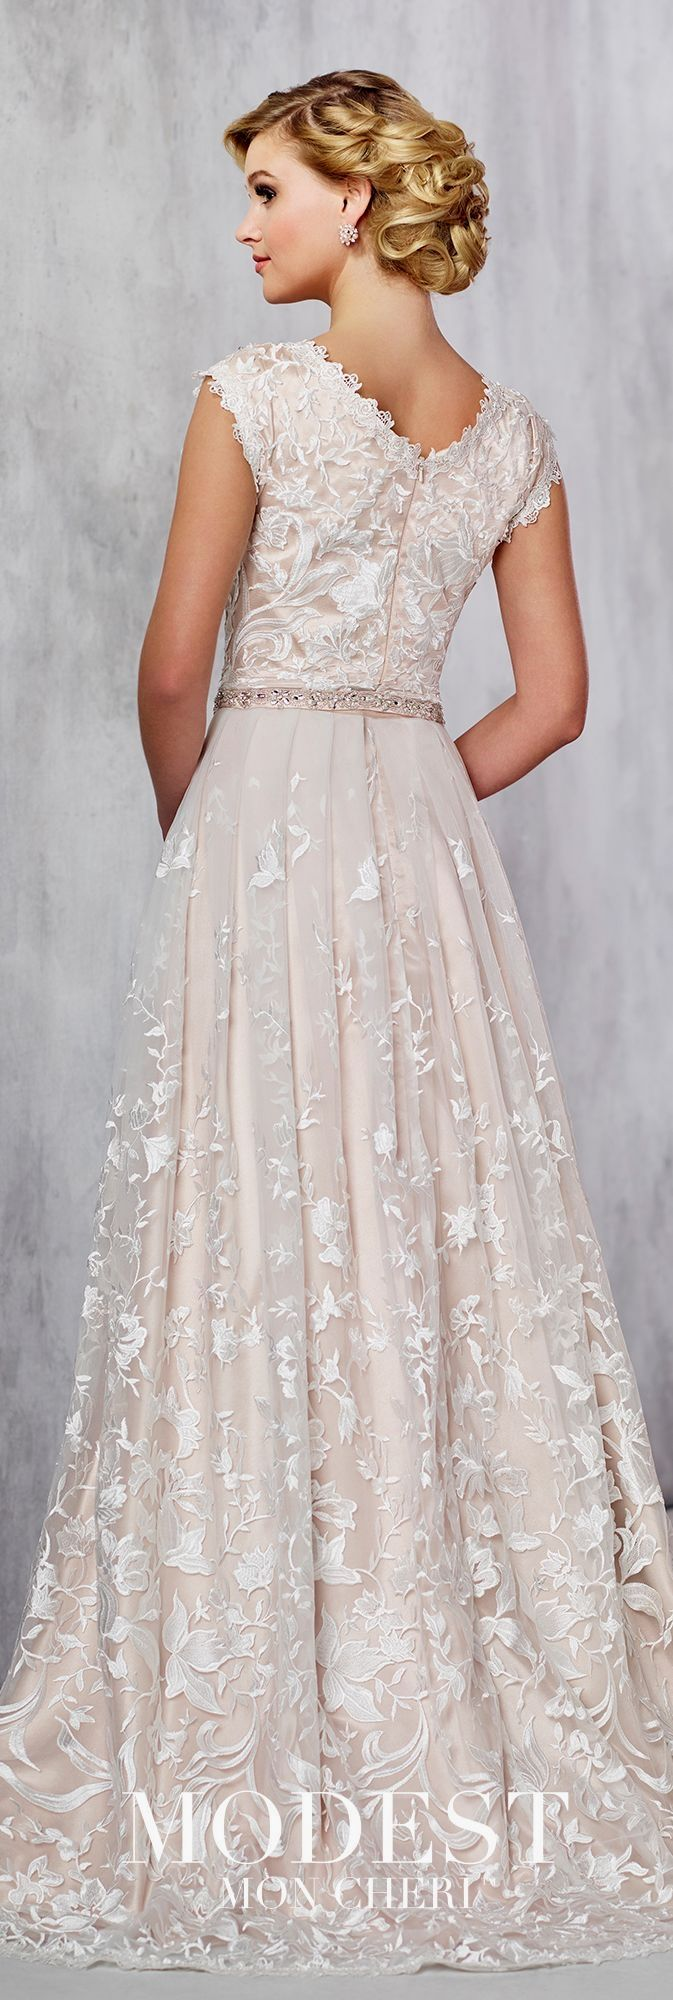 Trying on wedding dresses for the first time  Bridal Wedding Dress  Dresses For Beautiful Brides  Pinterest